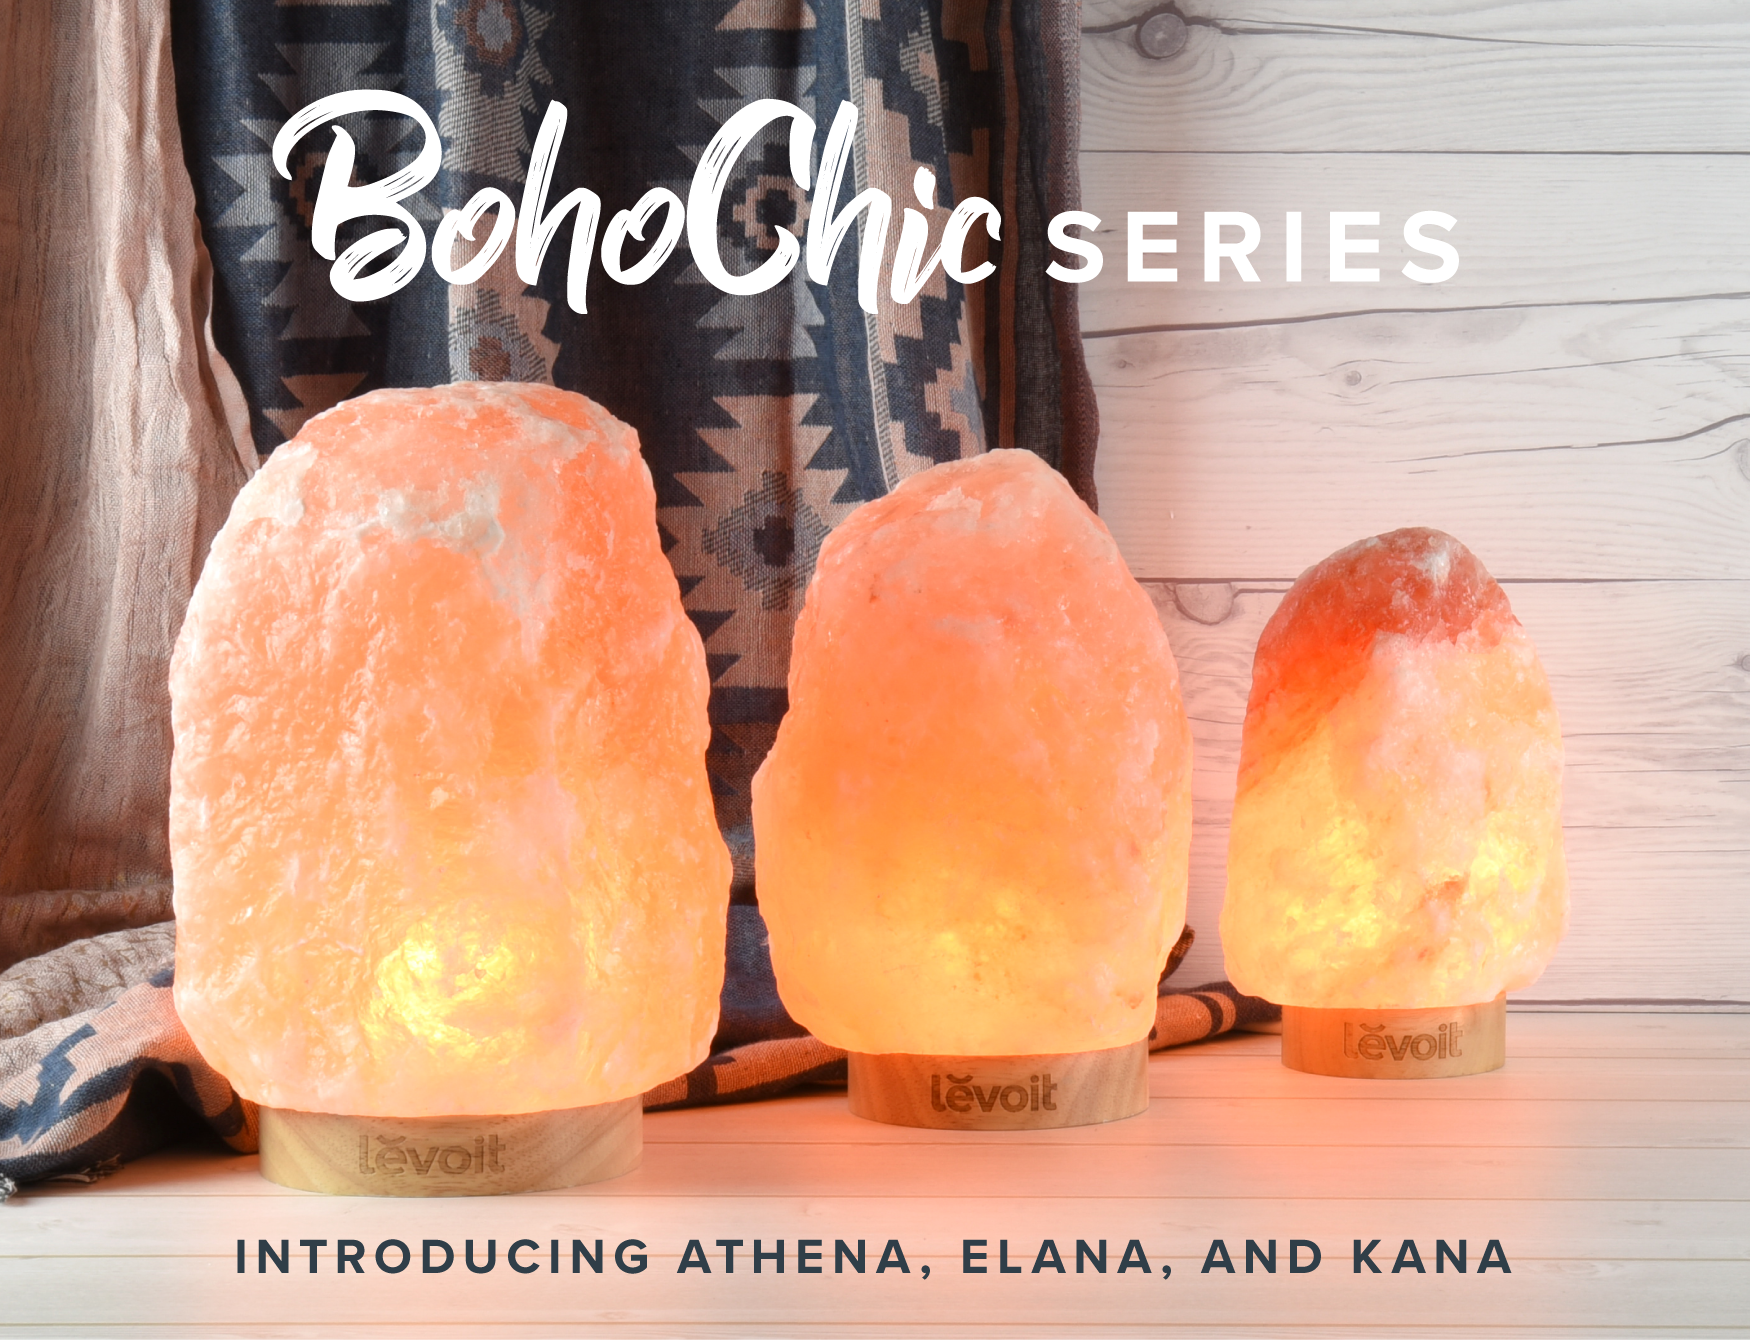 Let's Celebrate - Celebrate our newest line, the Boho Chic series, with us!Get 10% OFF the gorgeous Elana Himalayan Salt Lamp.Use code: LEVOIT10